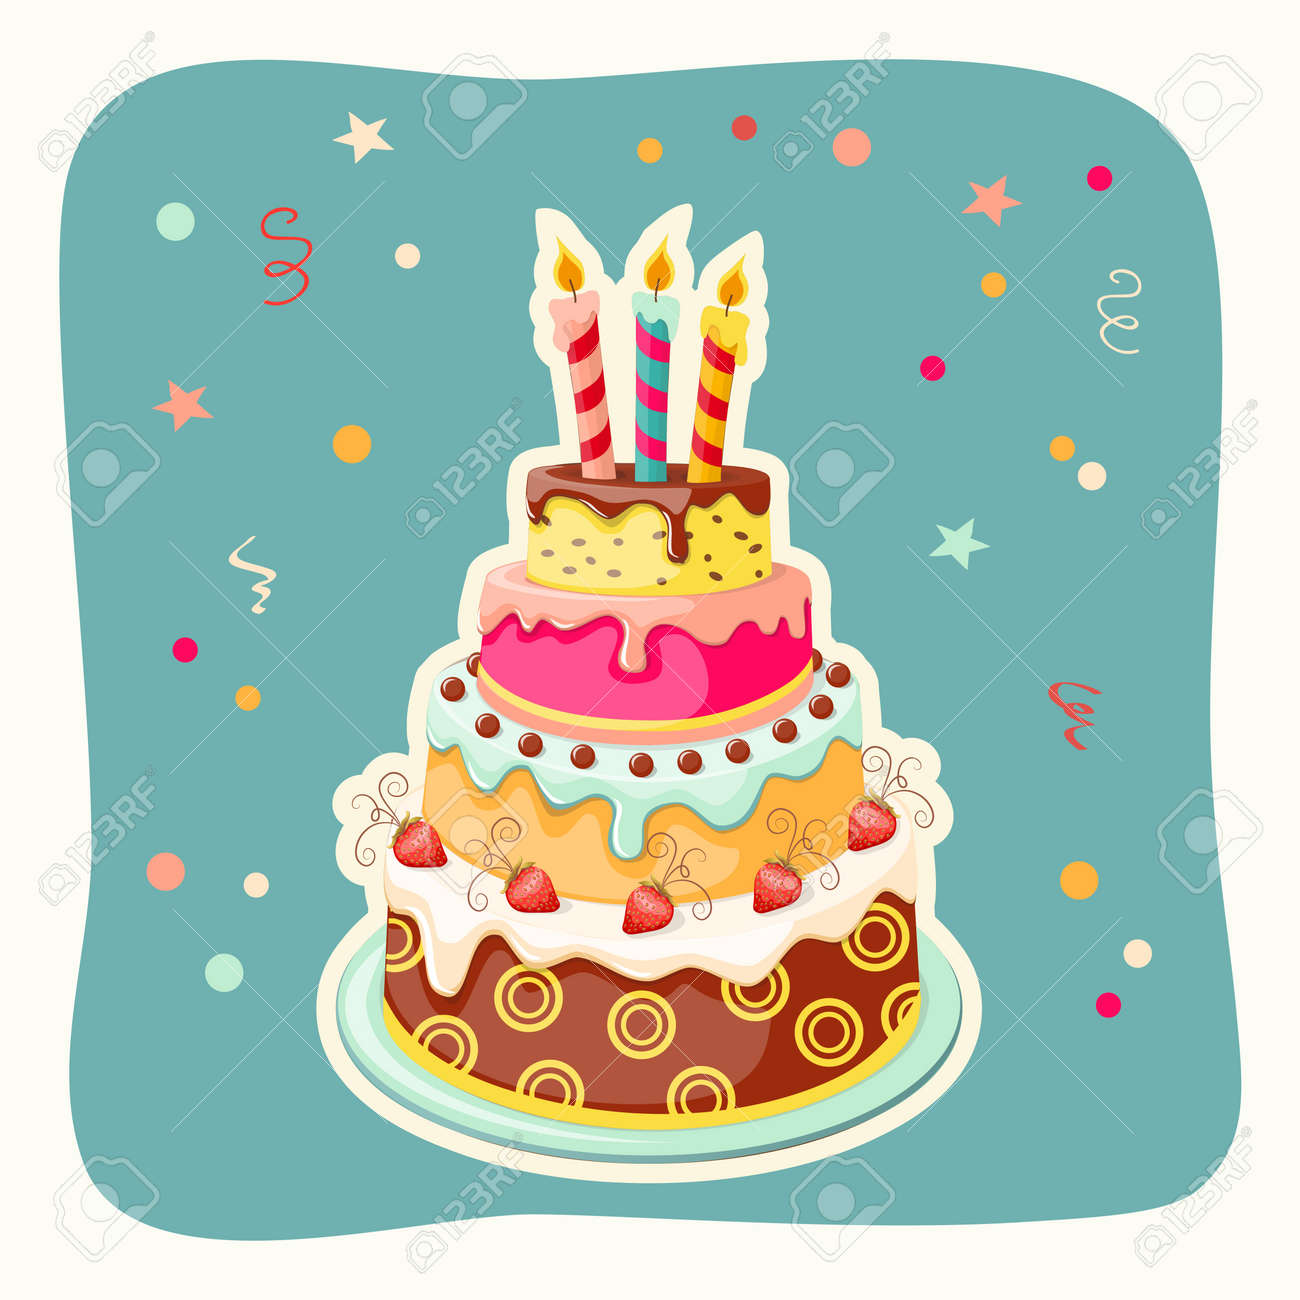 Festive Colorful Card With Birthday Cake Tier Candle And Royalty